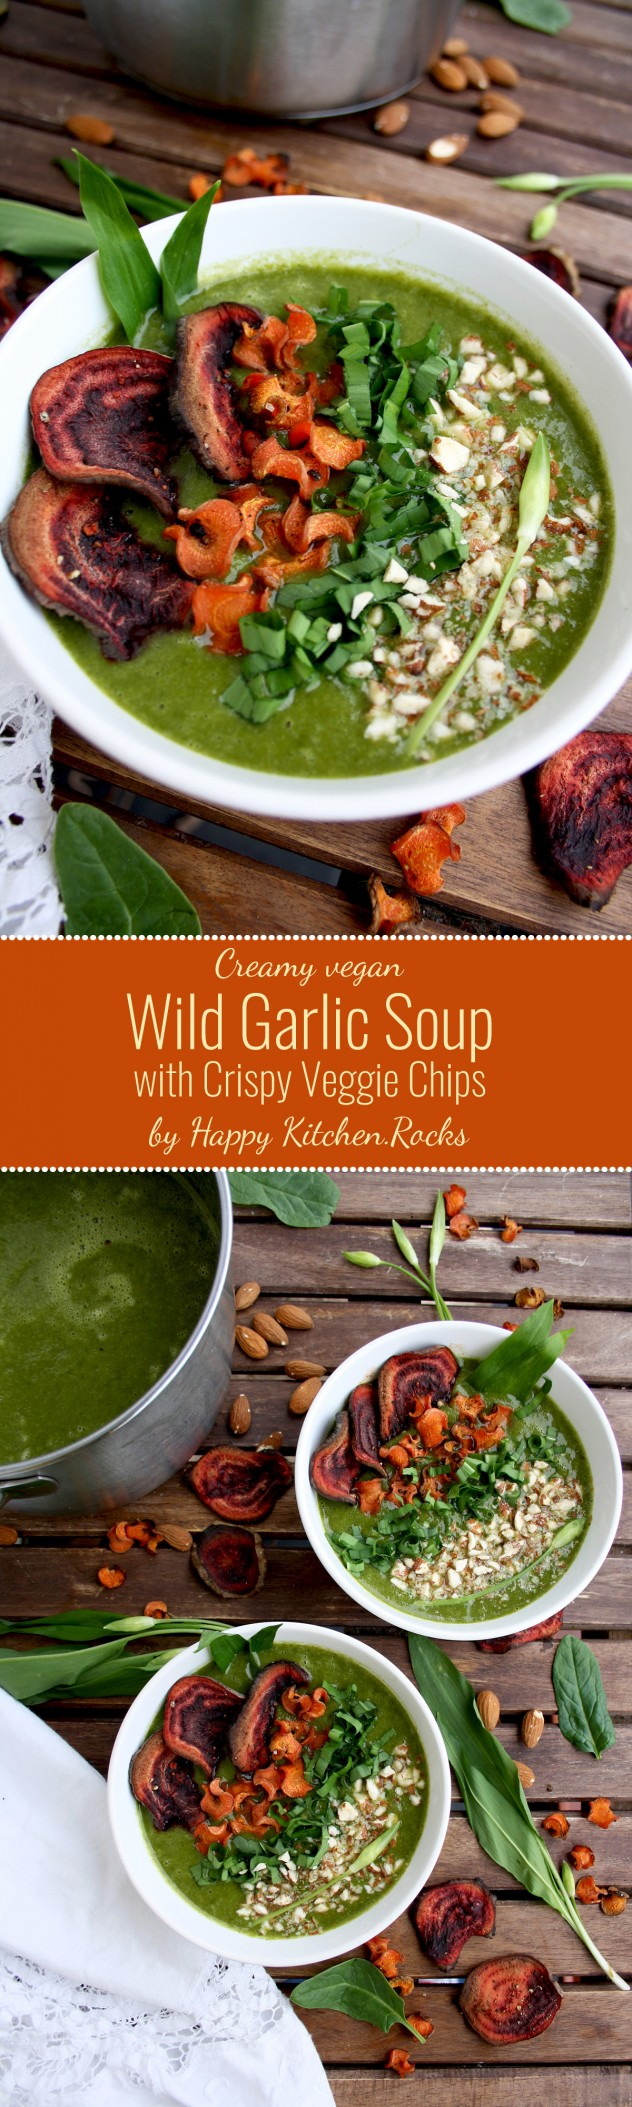 Creamy Wild Garlic Soup with Crispy Veggie Chips: Delicious and healthy vegan soup packed with spring greens and crispy baked vegetable chips. Gluten-free, vegetarian, low fat, low carb.